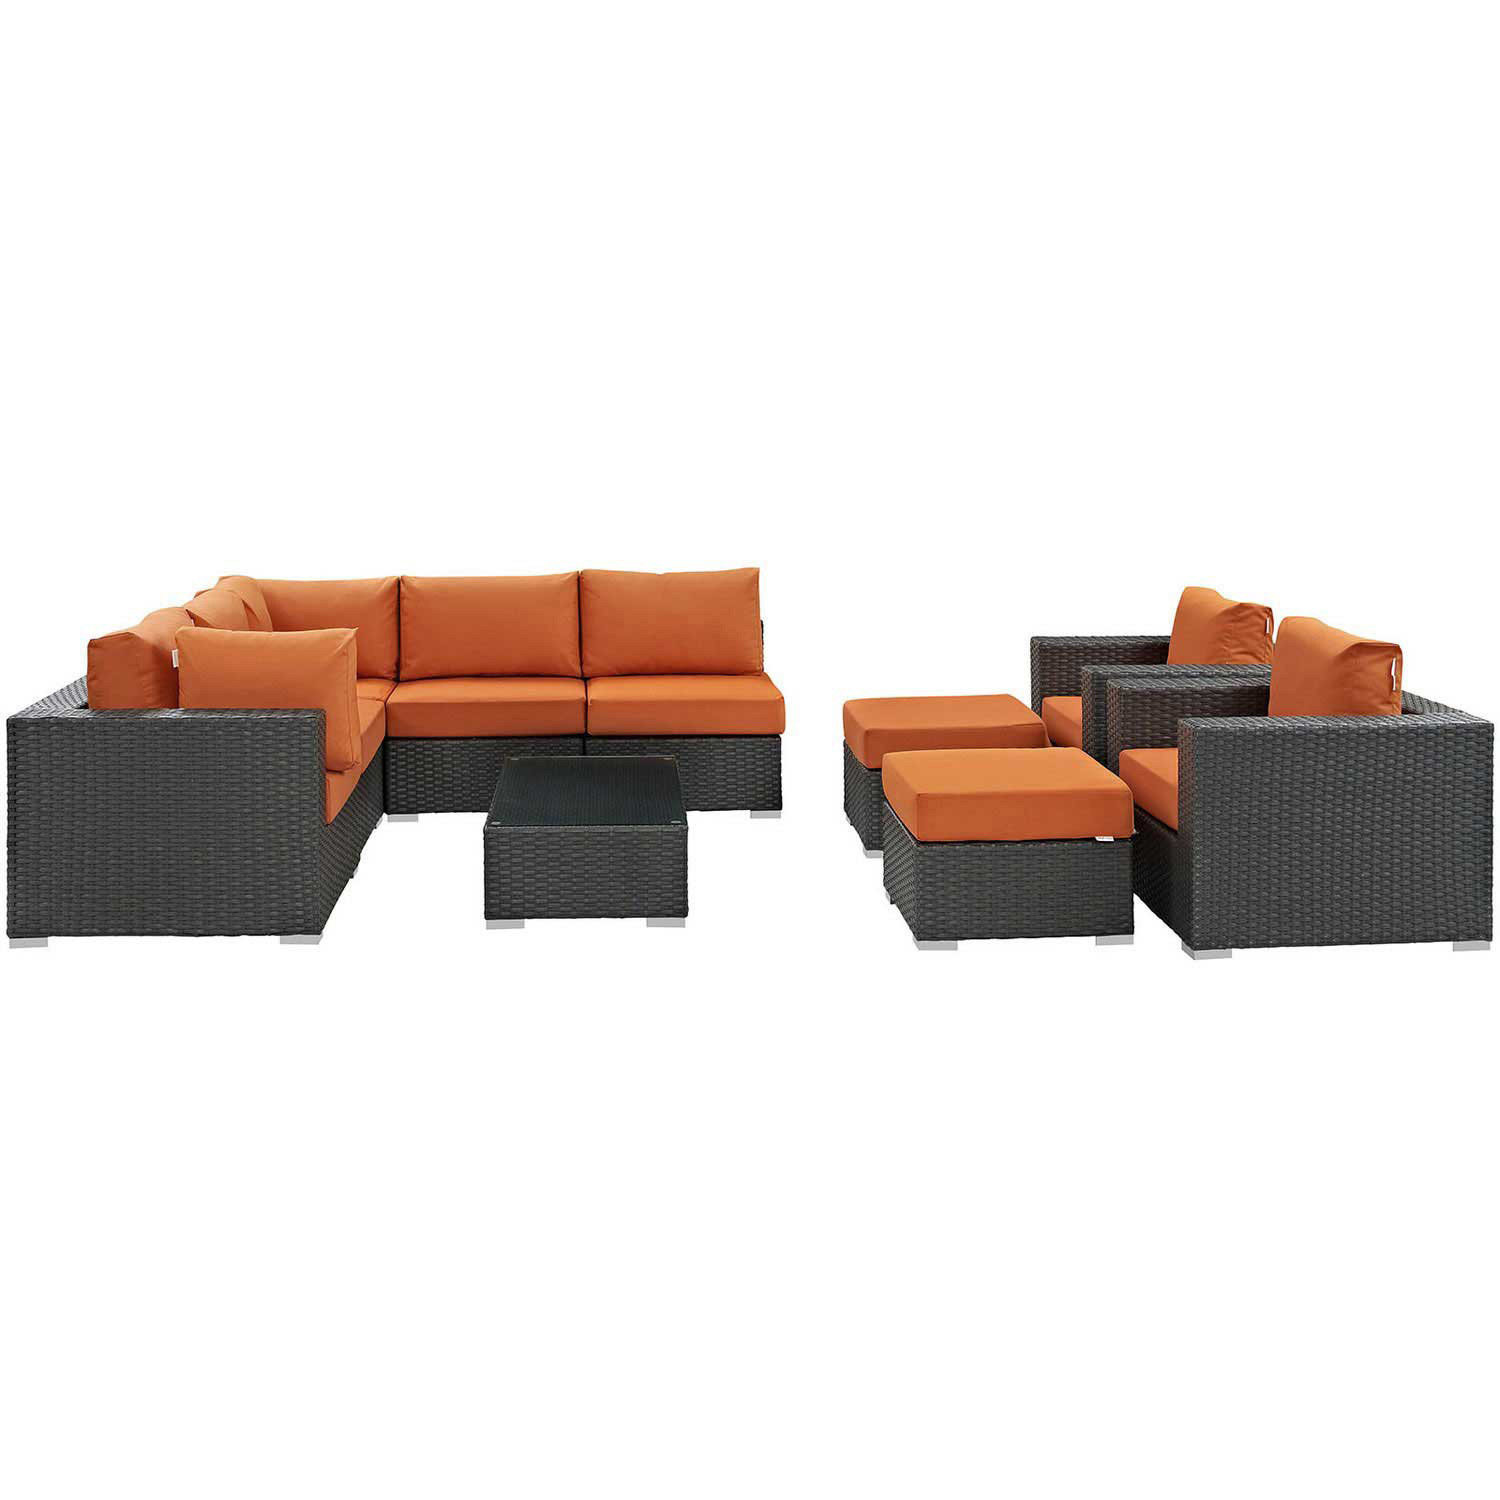 Modway Sojourn 10 Piece Outdoor Patio Sunbrella Sectional Set - Canvas Tuscan